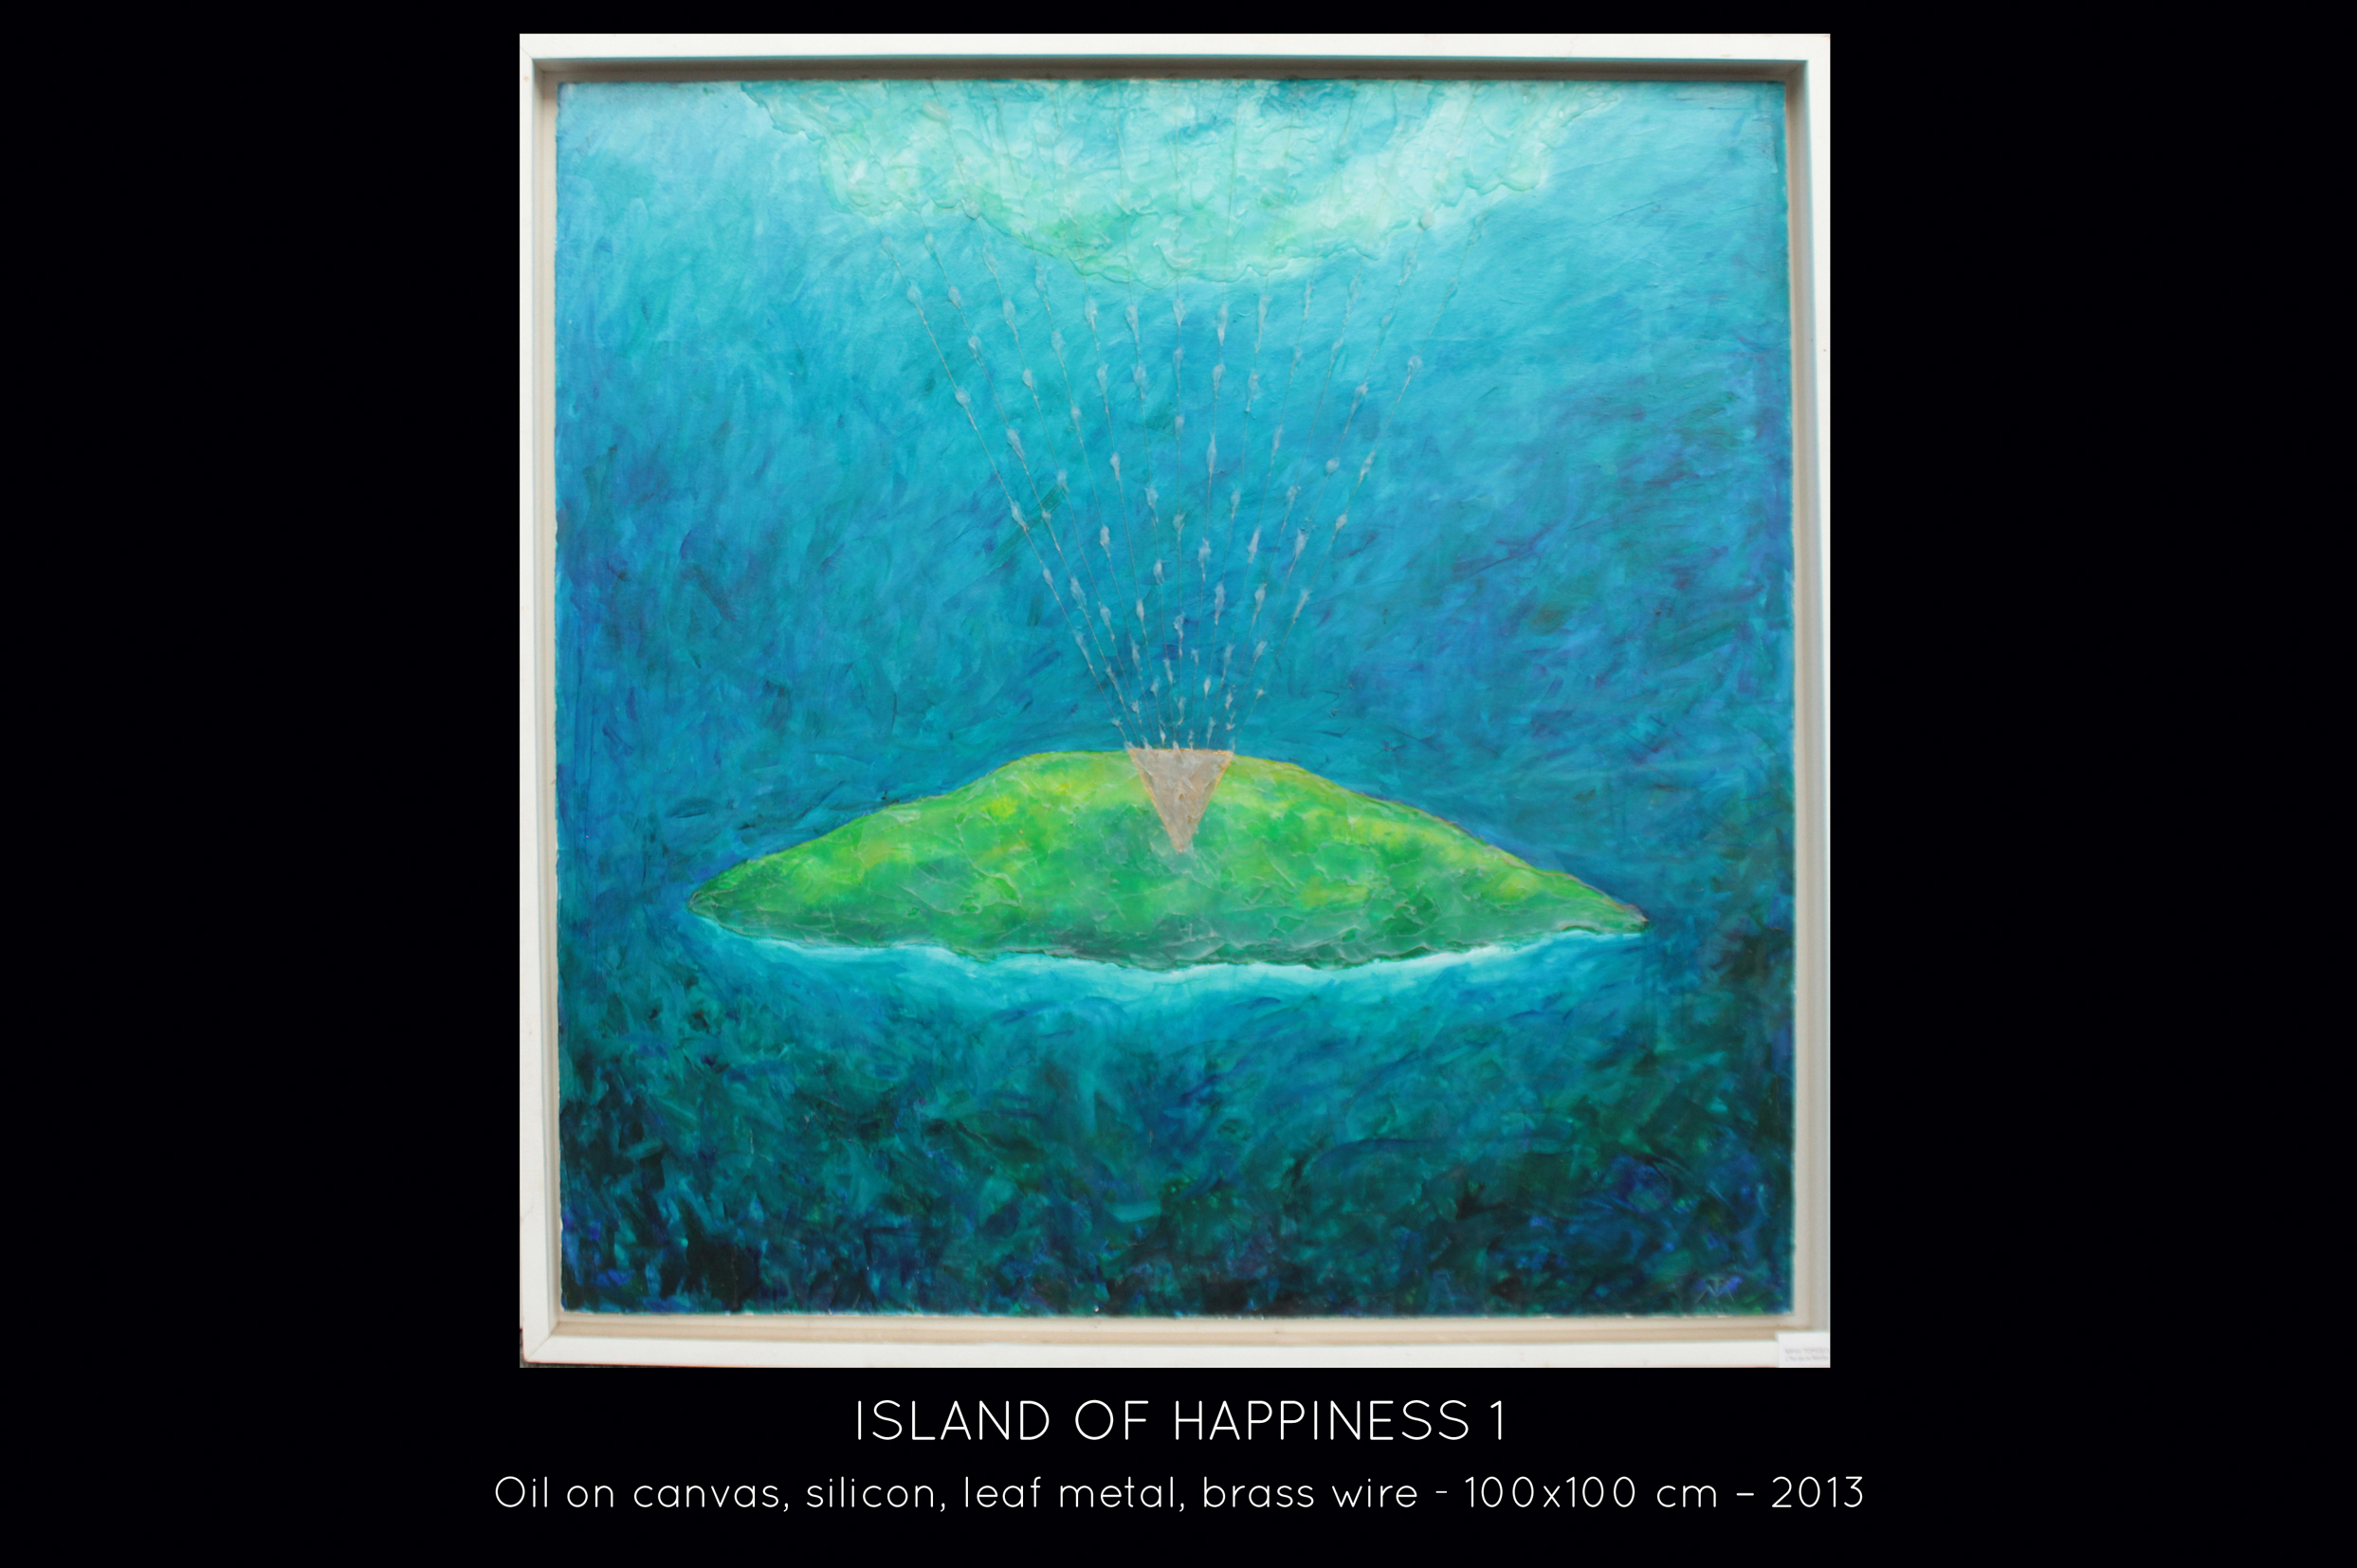 ISLAND OF HAPPINESS 1